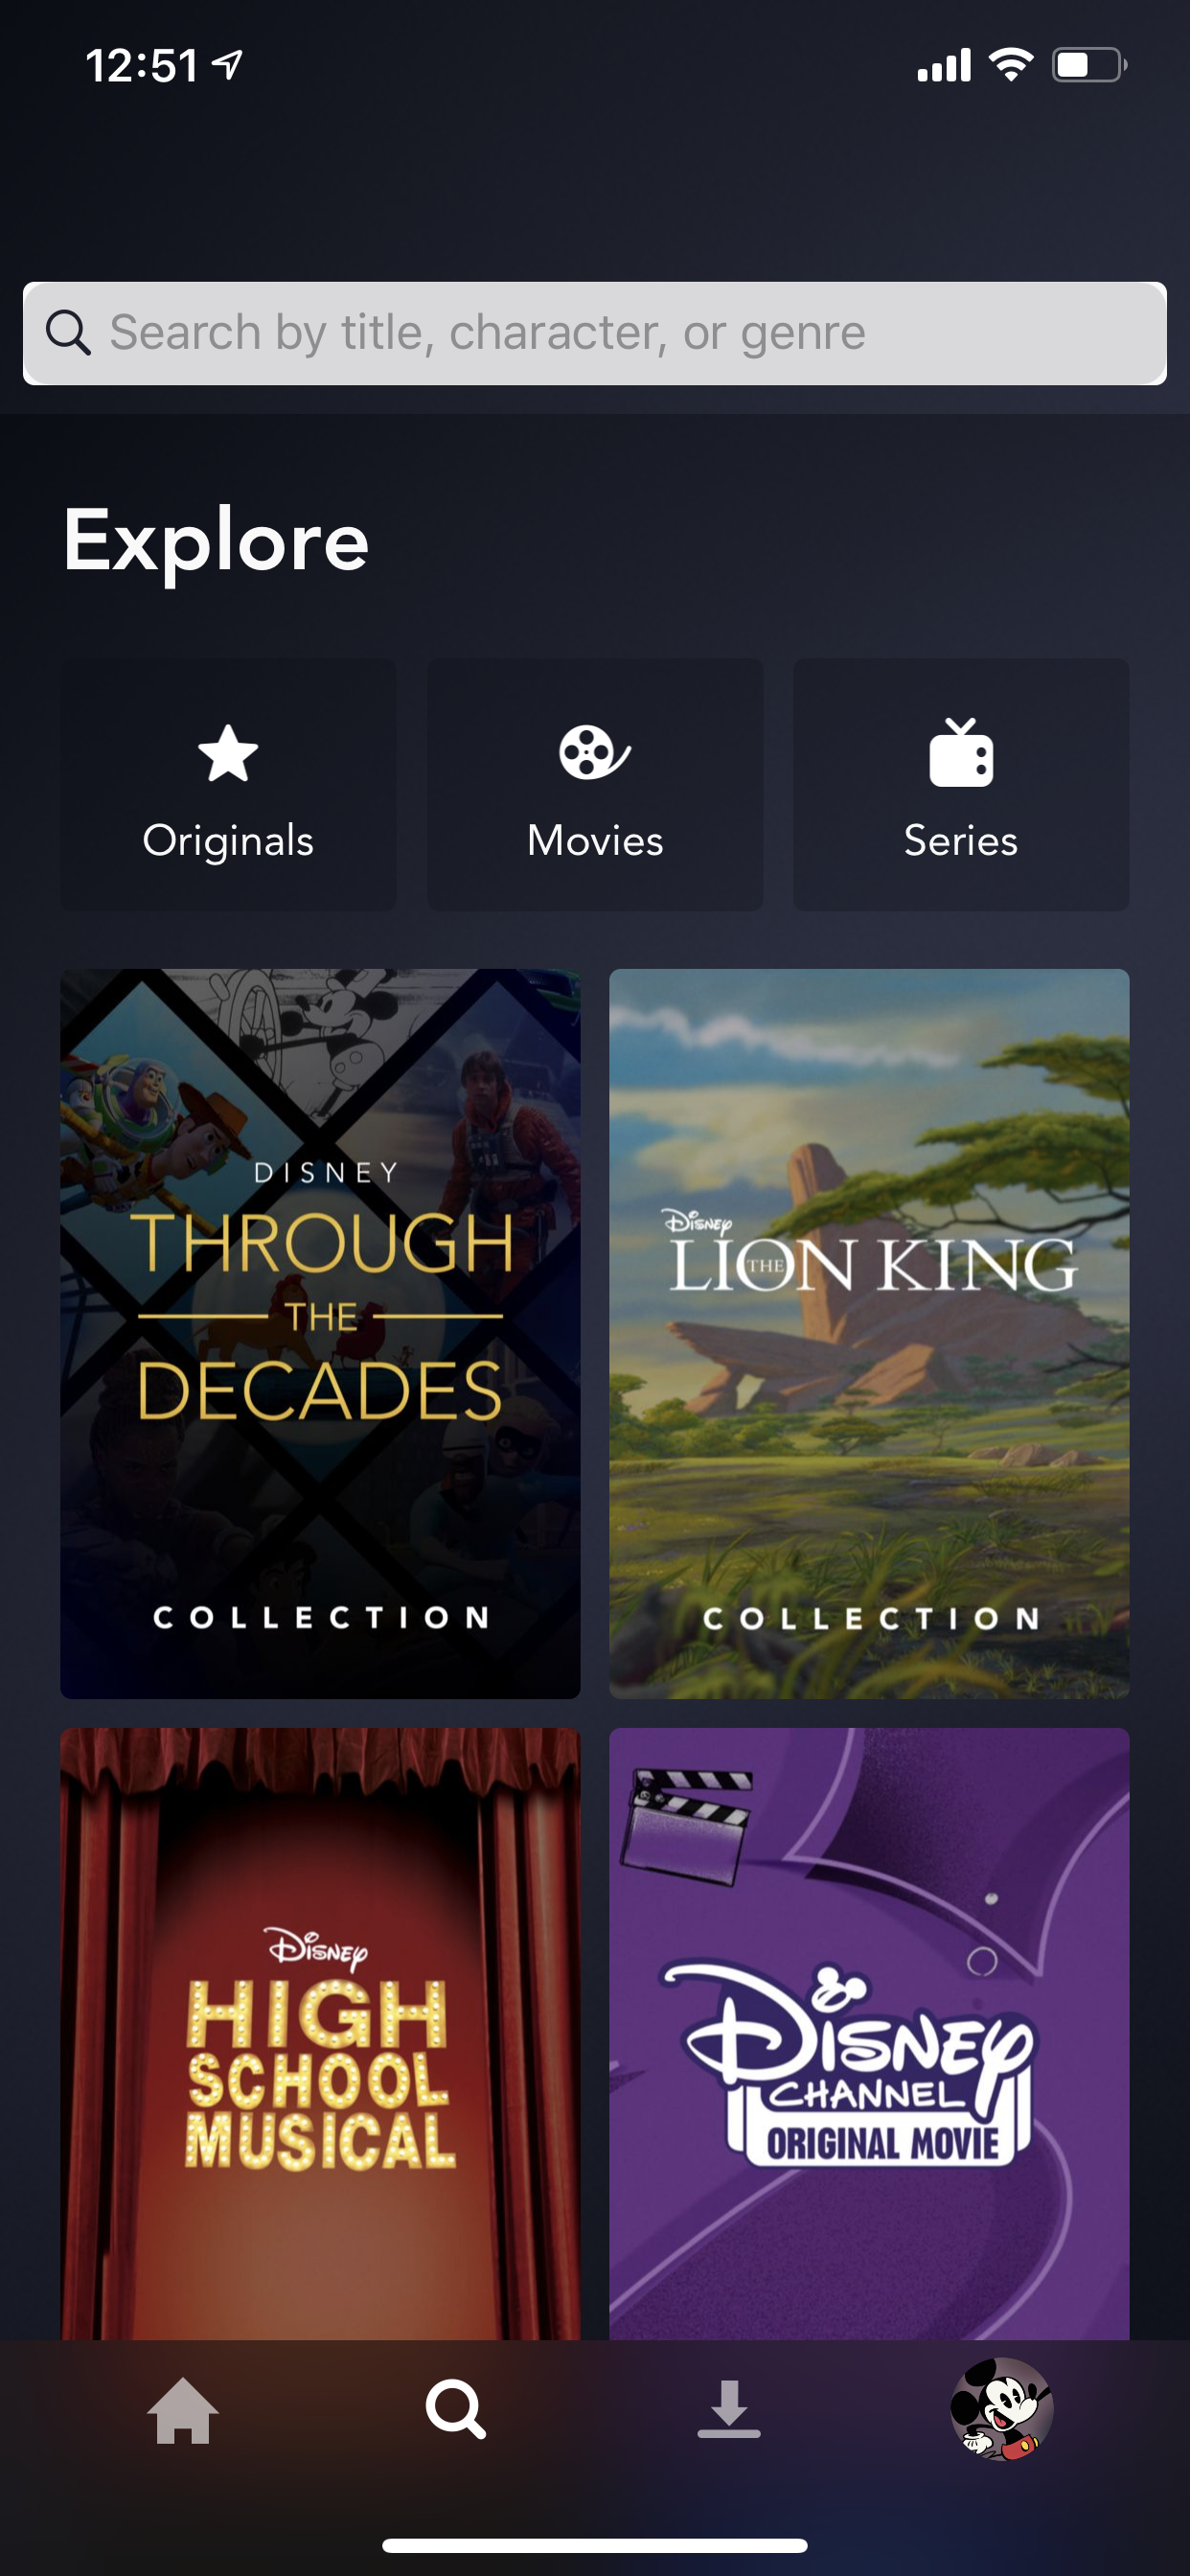 Example of App Design for iOS with the following features: content (image dominant), grid, search, tab bar, text button, icon button. App by DisneyPlus (iPhone X)